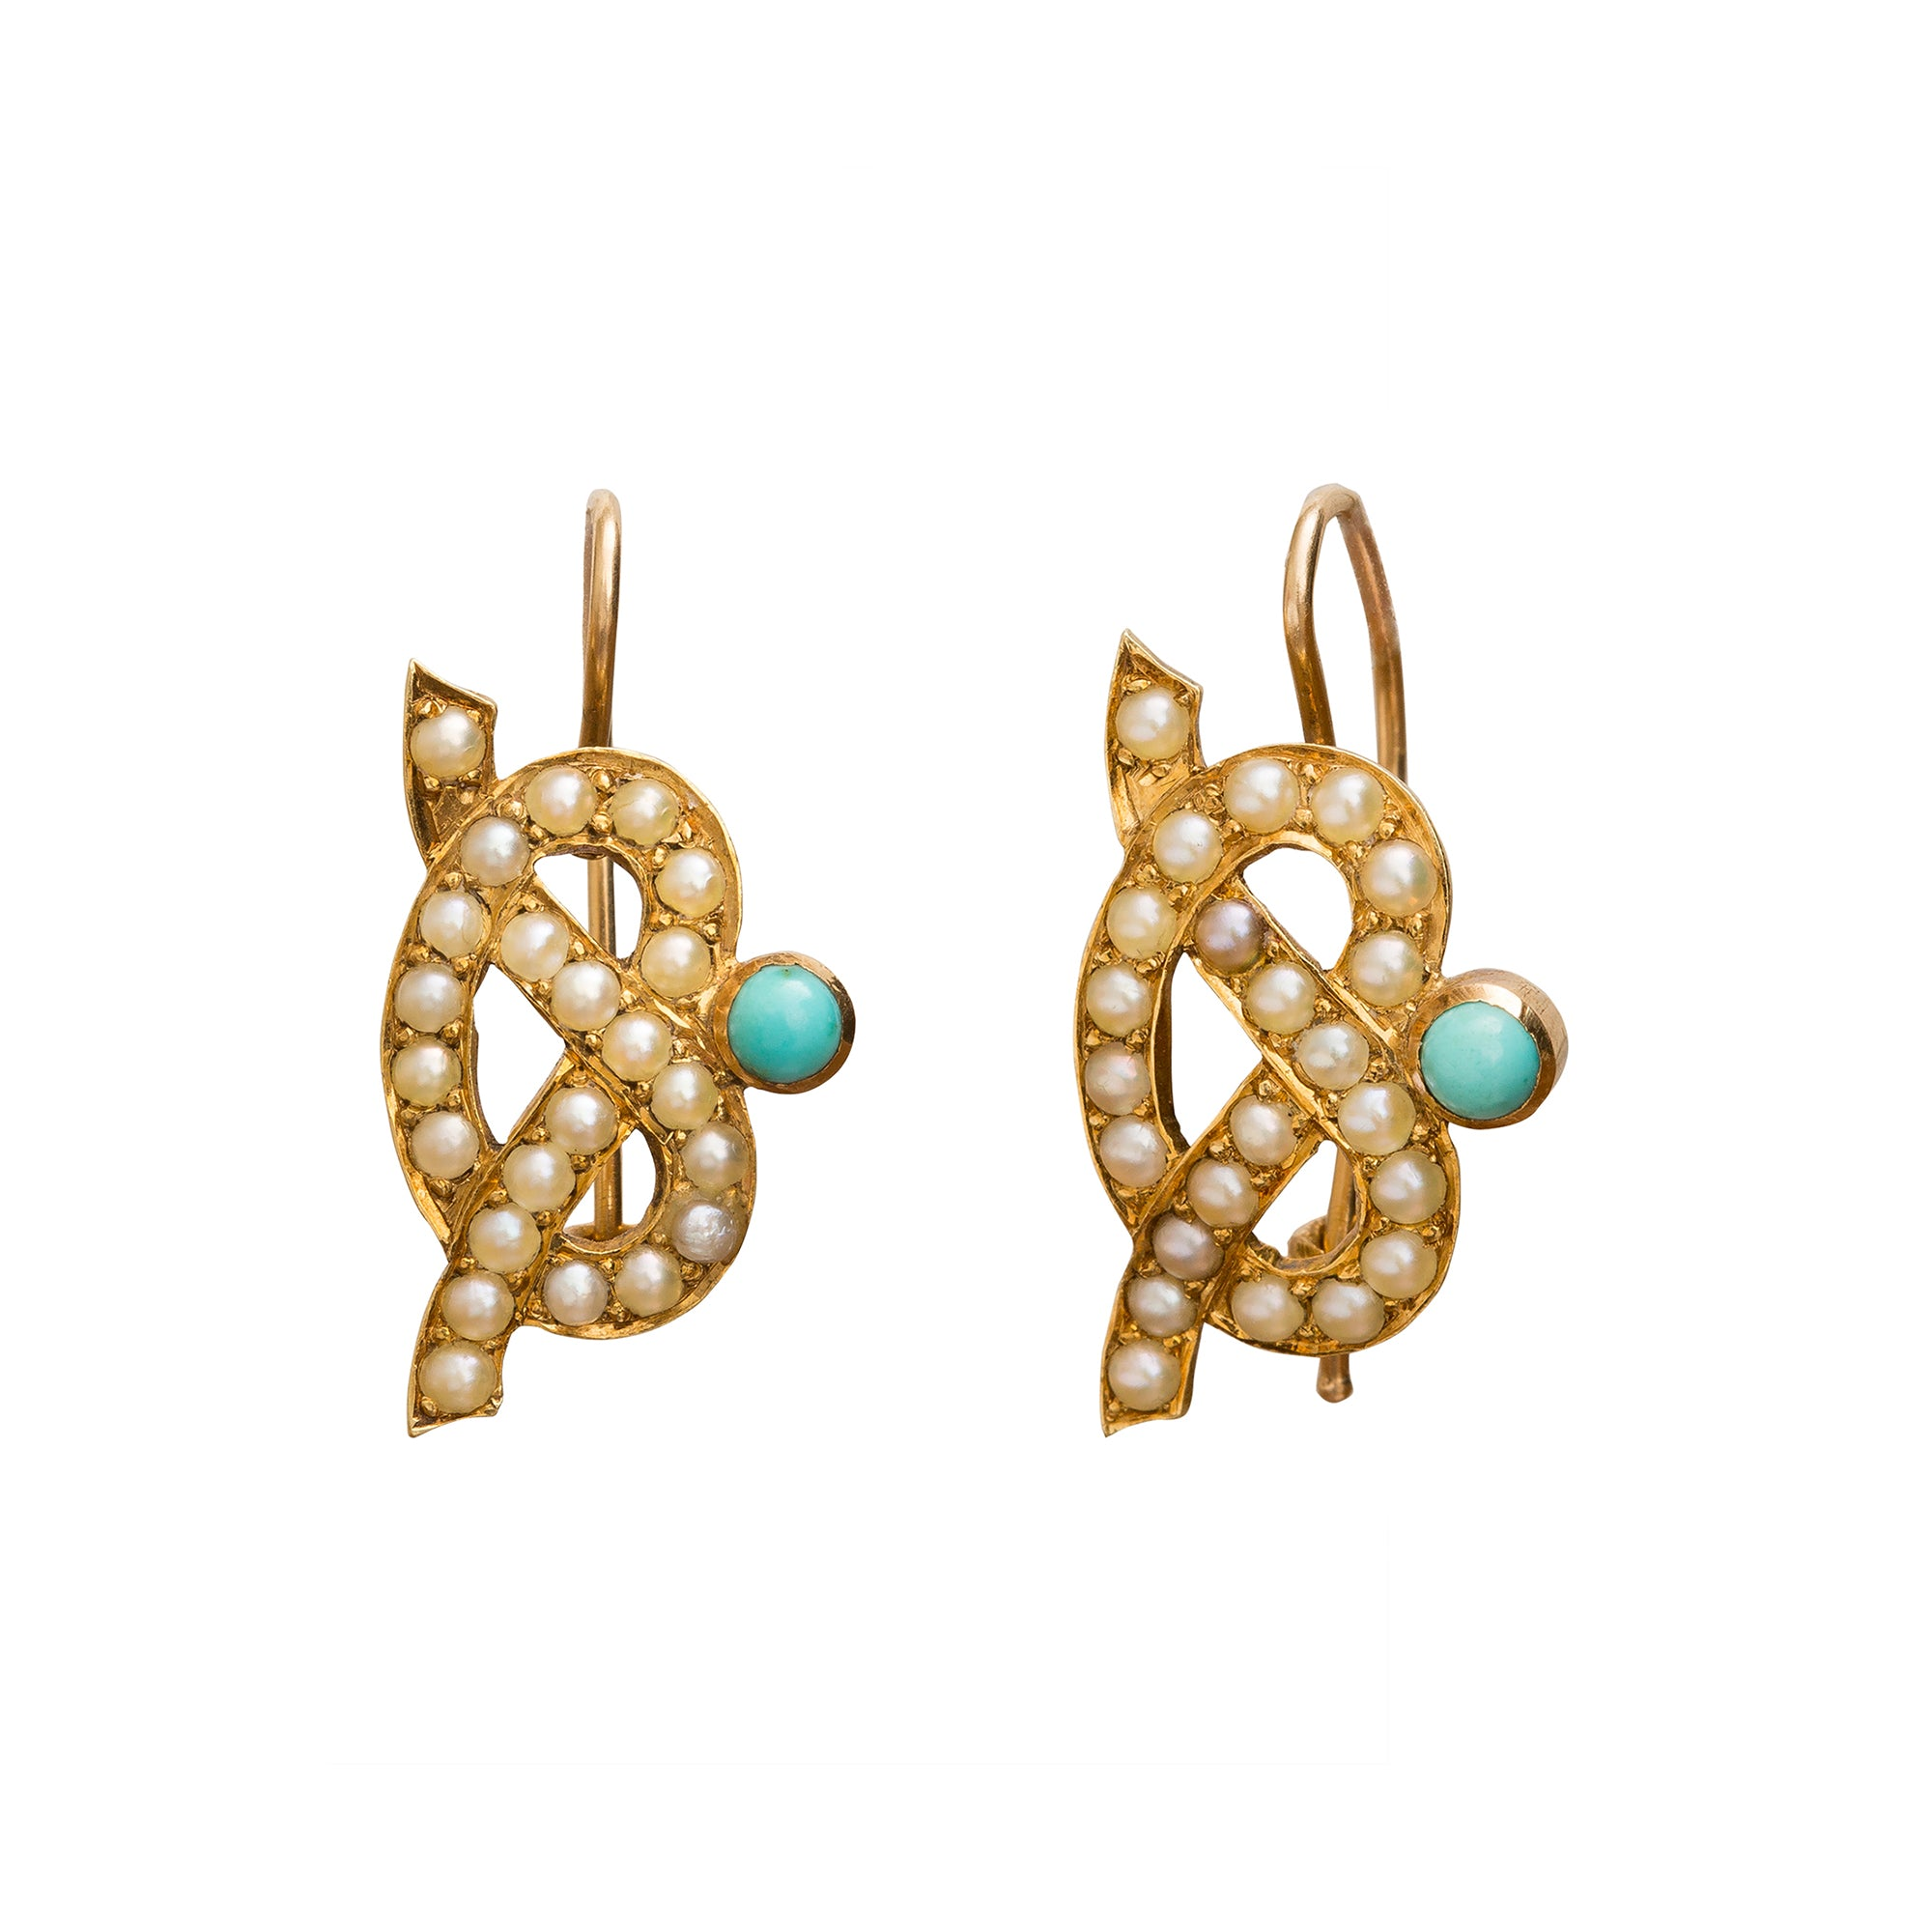 Love Knot Earrings by Vintage Jewelry for Broken English Jewelry